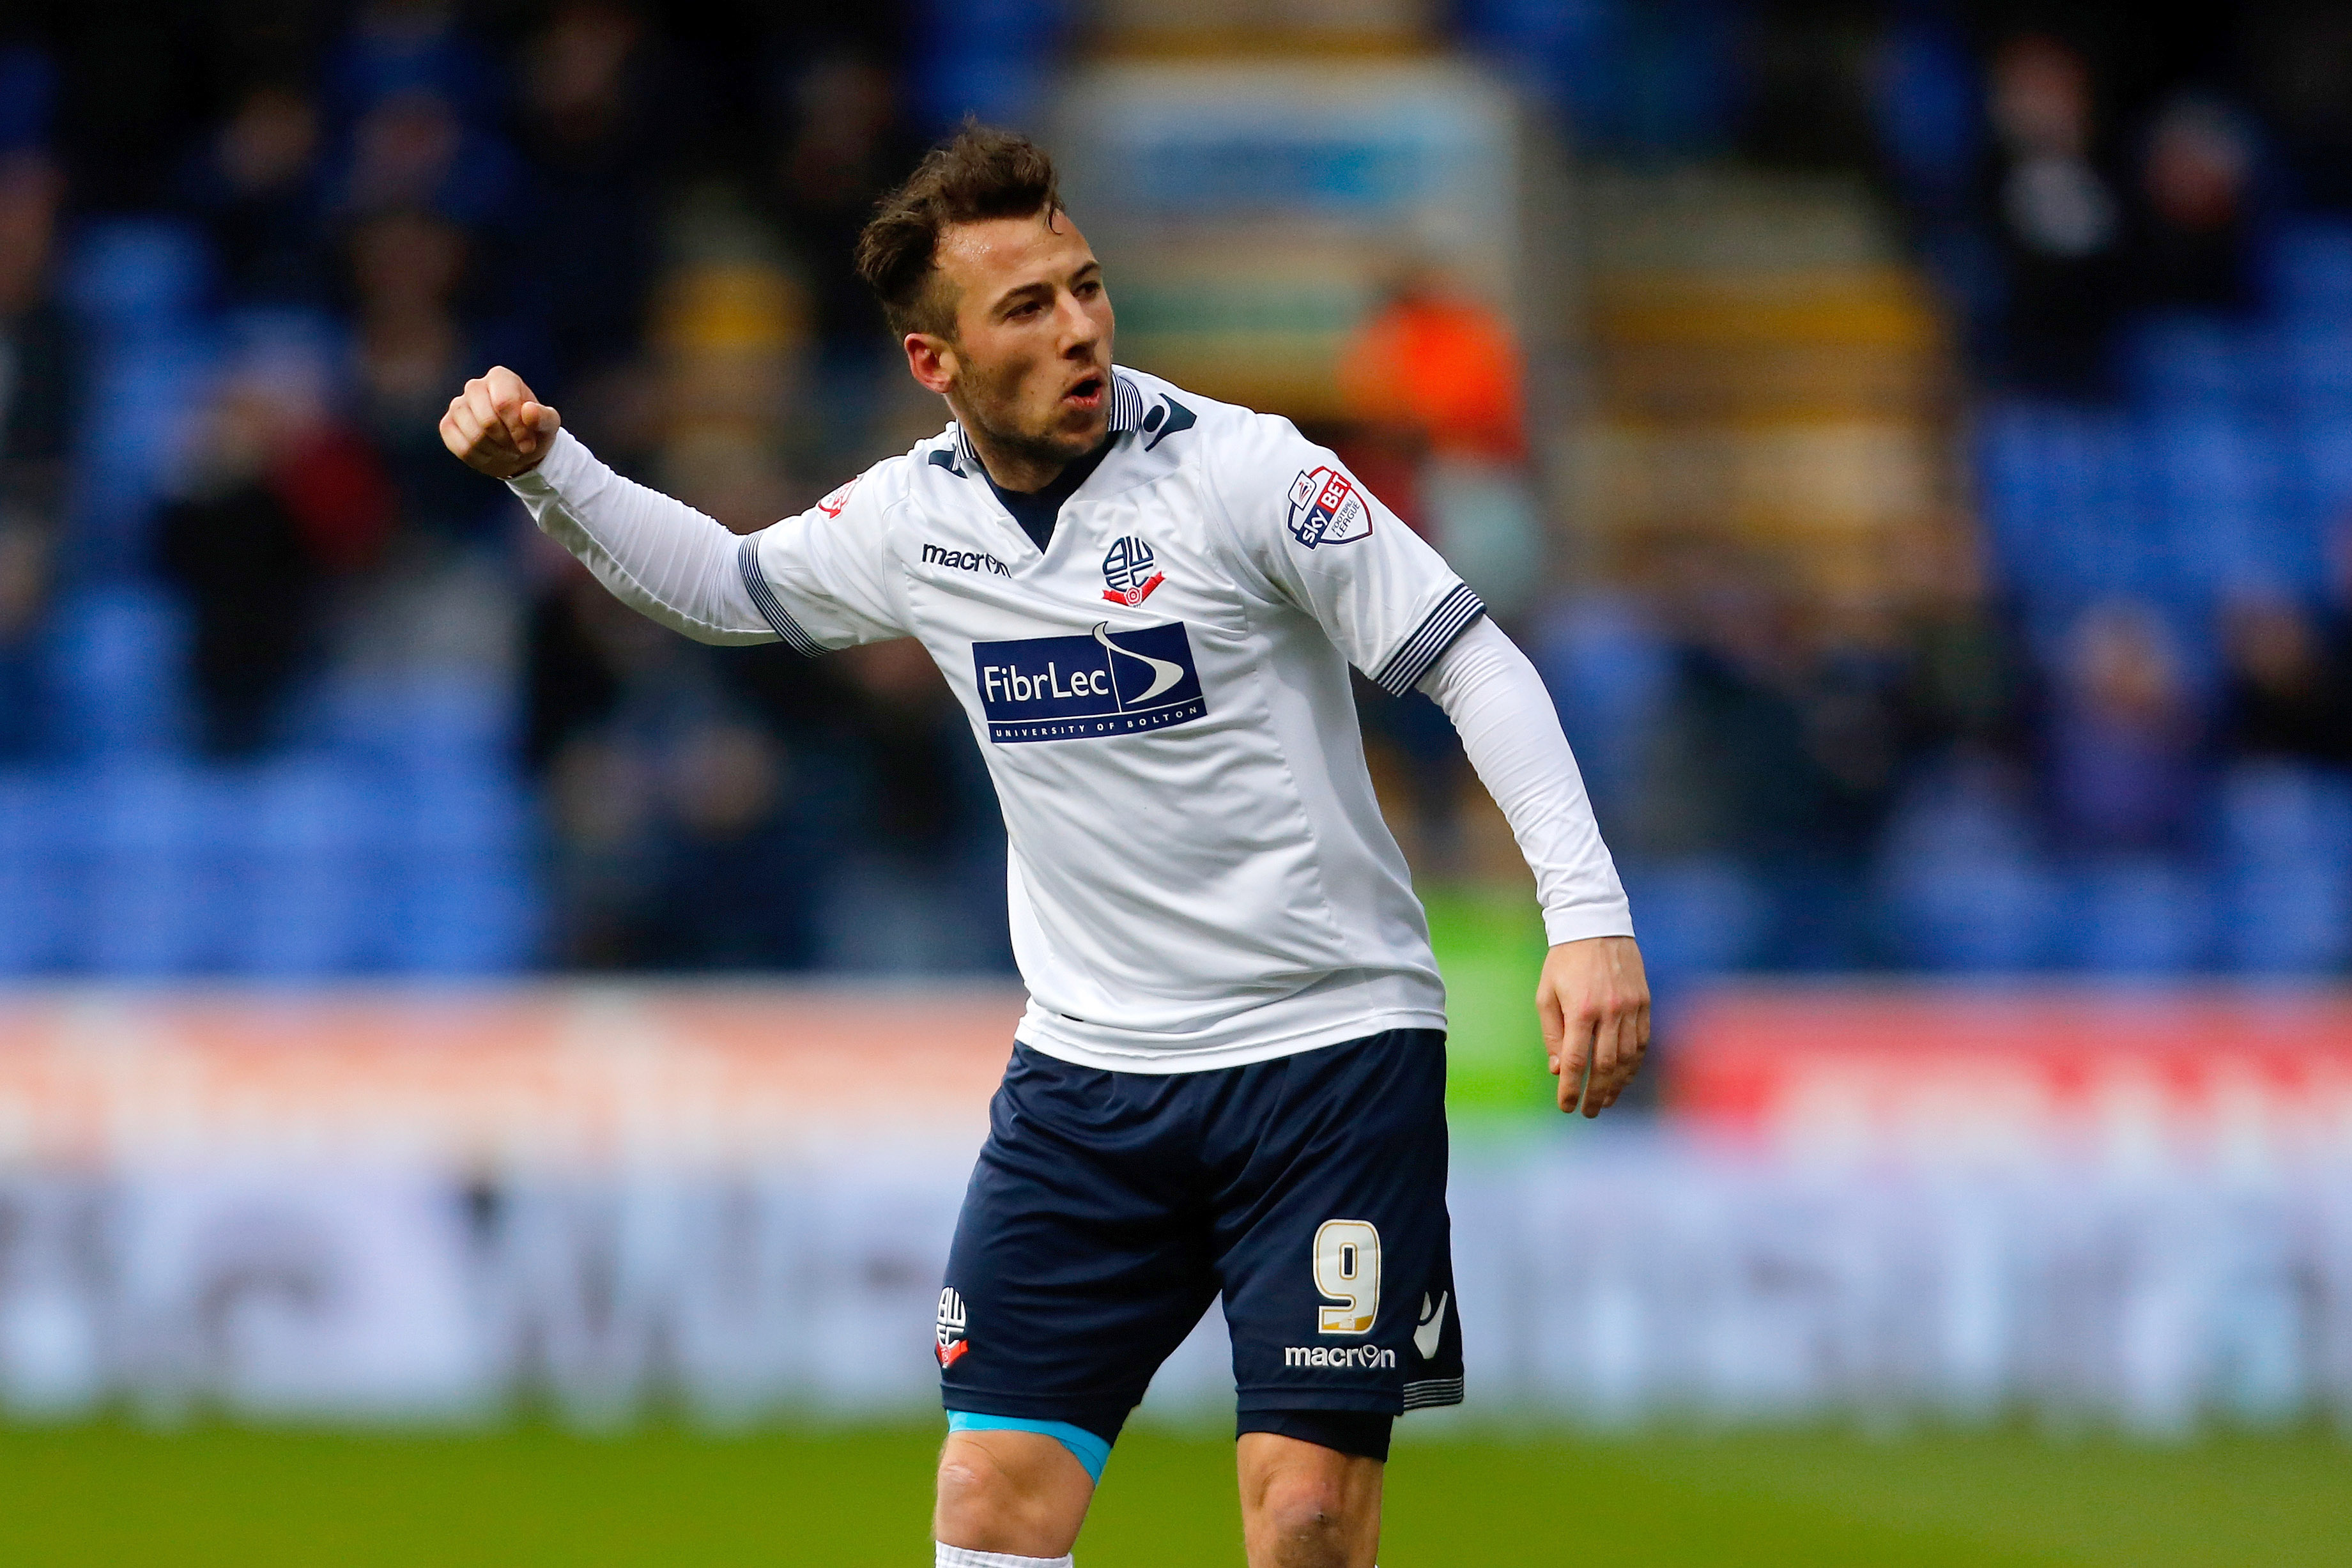 Can Le Fondre continue his goalscoring exploits tonight? Answer: Nope, he's not playing!